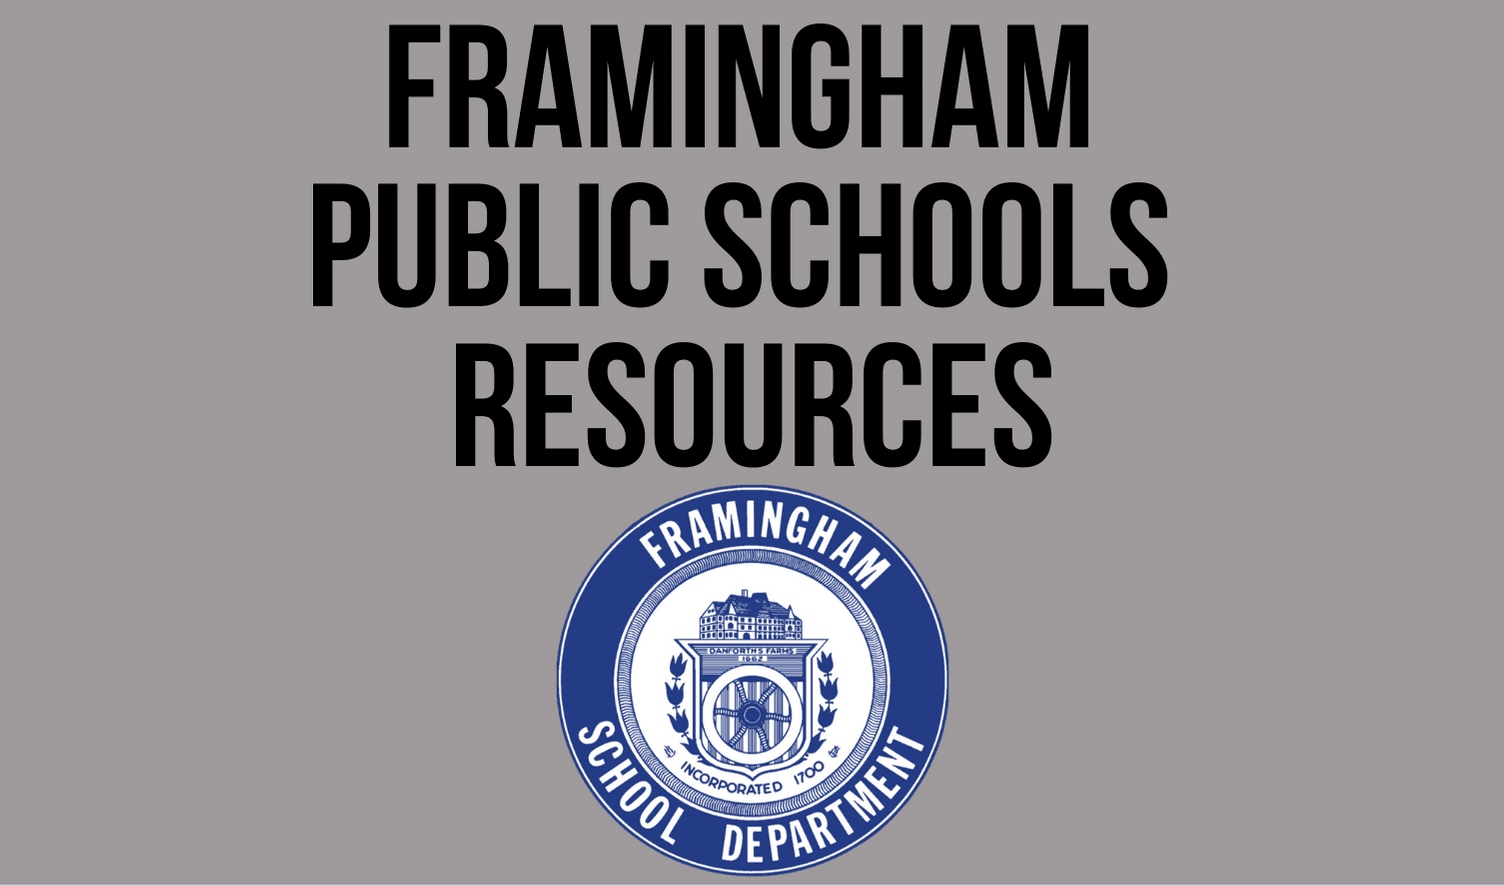 Picture of the School Department Seal with the following text: Framingham Public Schools Resources